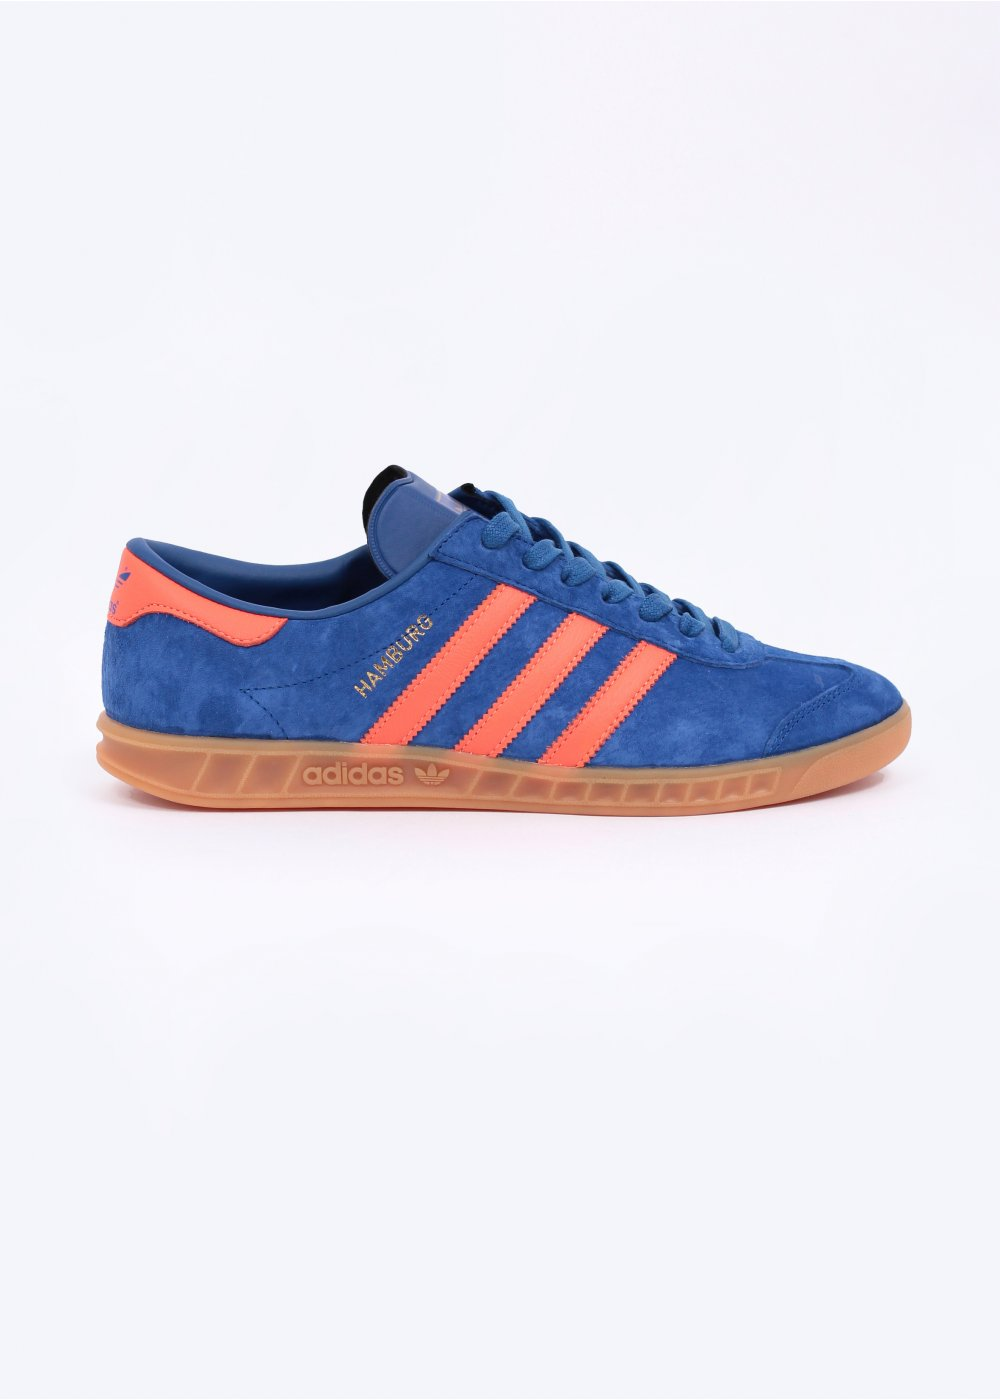 147d589a62c1 adidas Originals Hamburg  Dublin  Trainers - Royal Blue   Warning Red